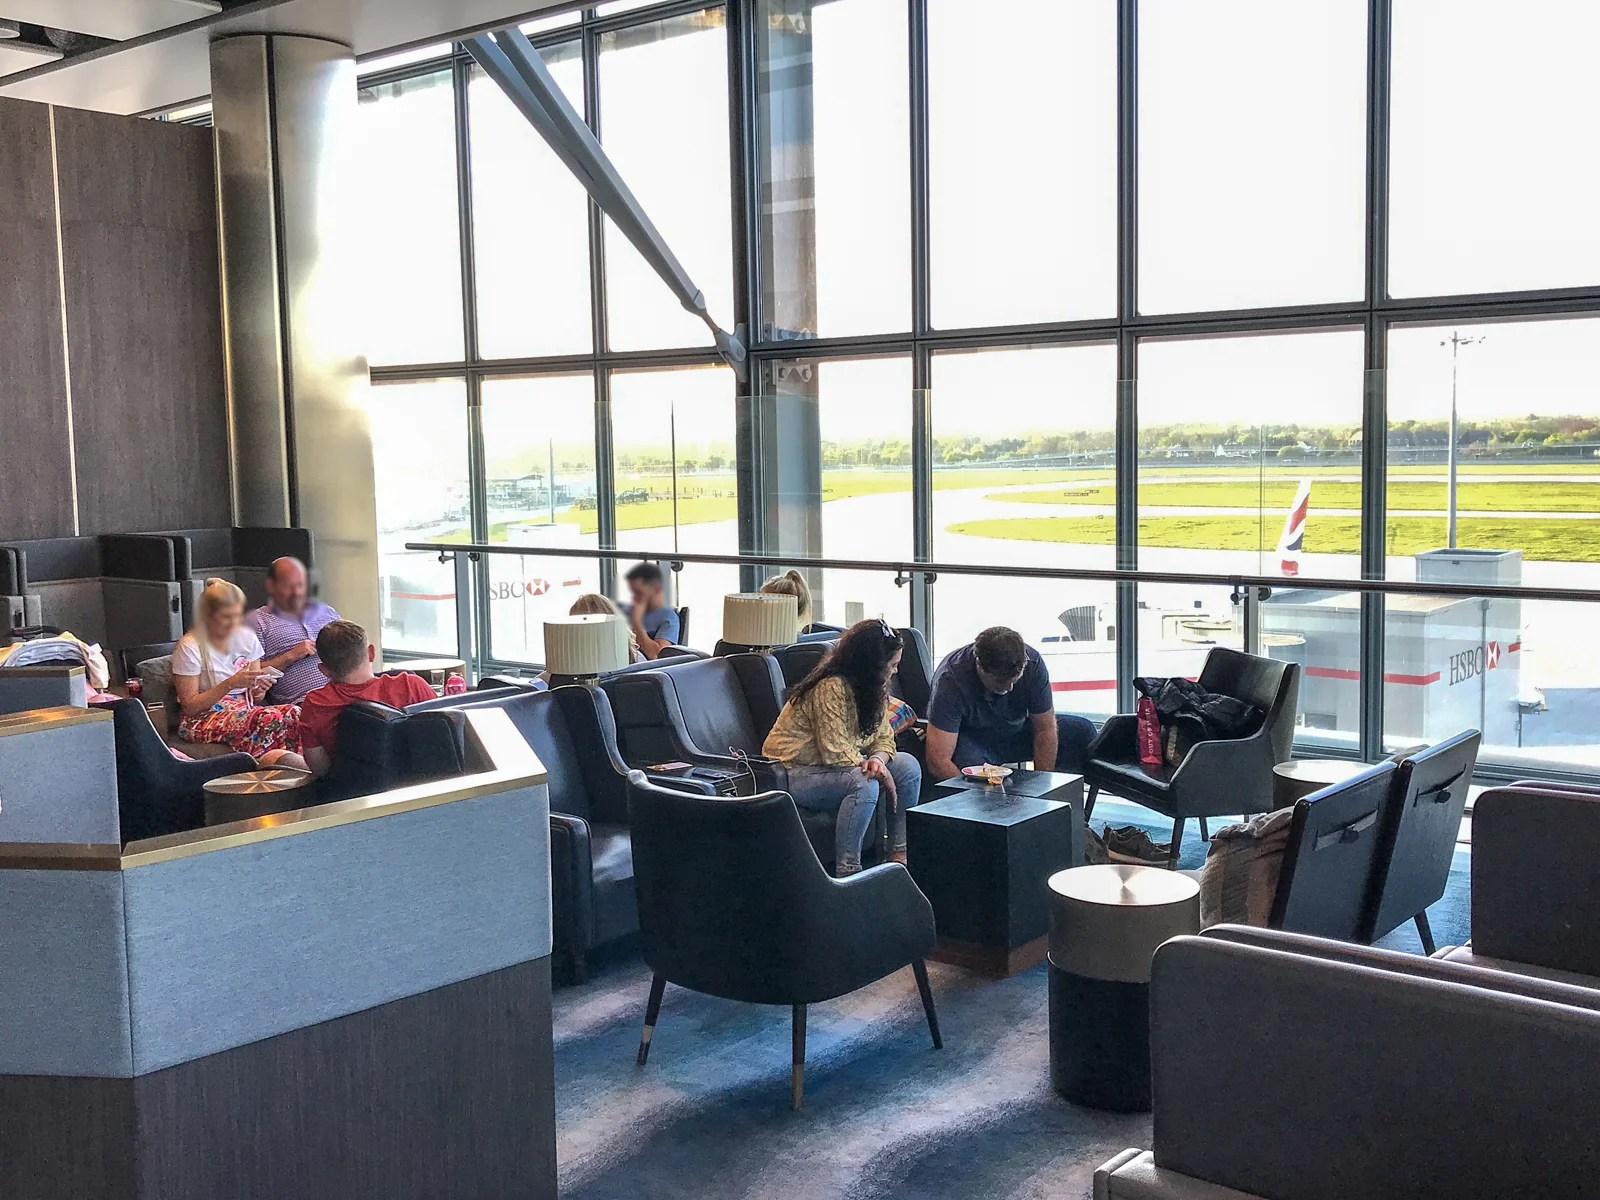 10 features you can expect from a Priority Pass airport lounge